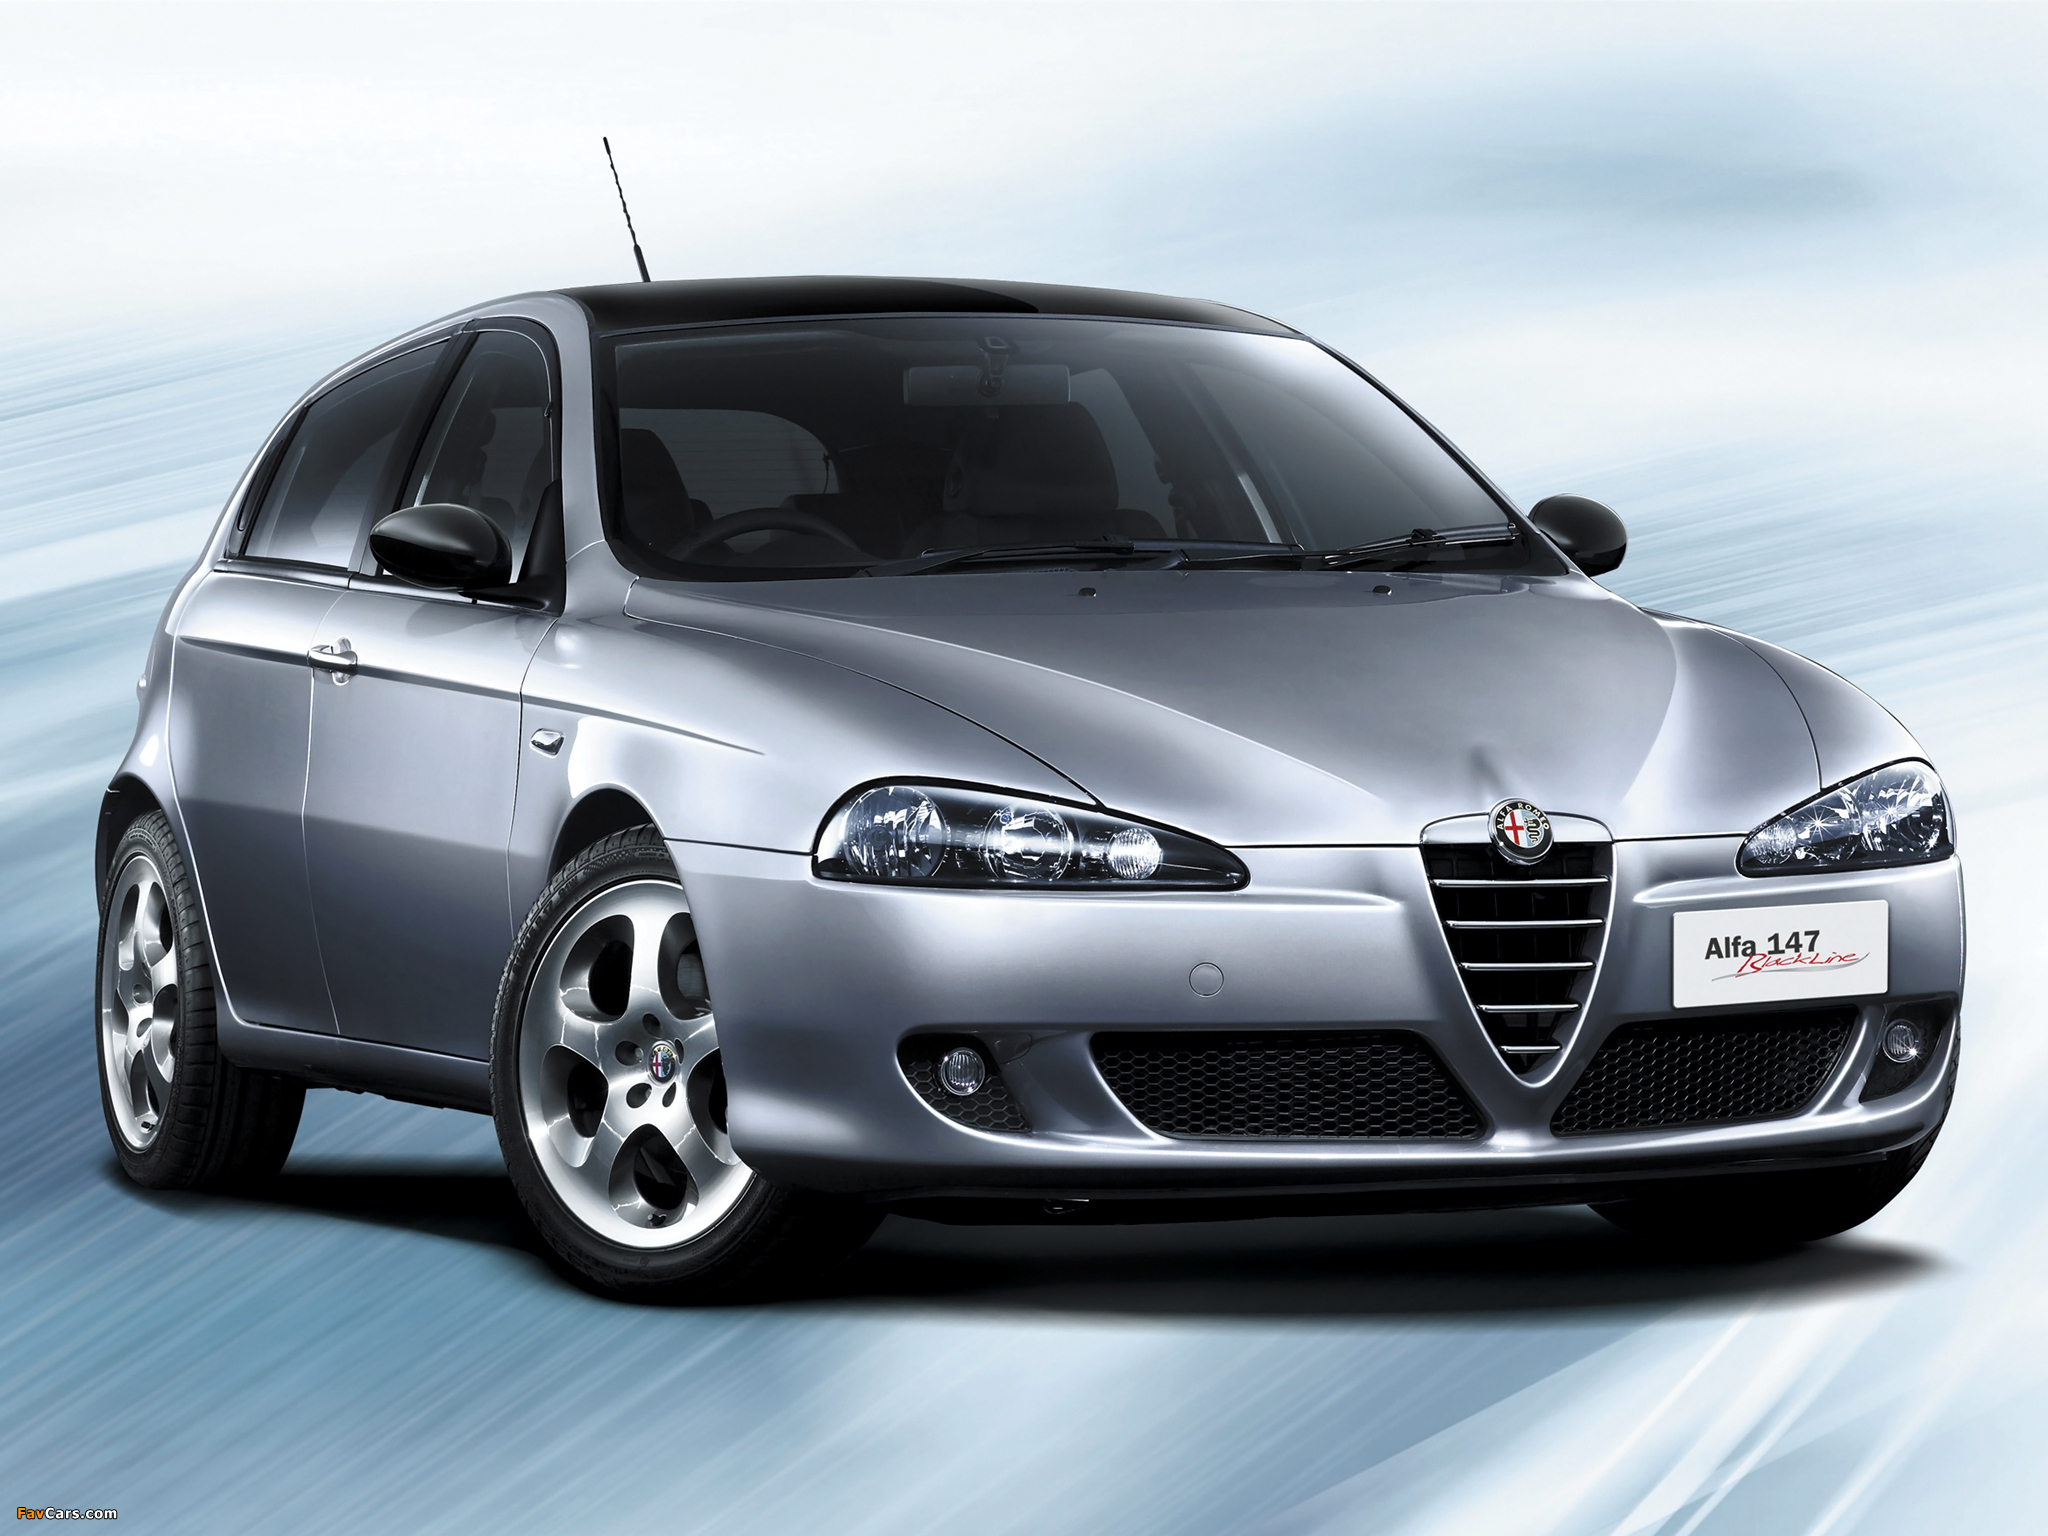 alfa romeo 147 blackline jp spec 937b 2006 pictures 2048x1536. Black Bedroom Furniture Sets. Home Design Ideas